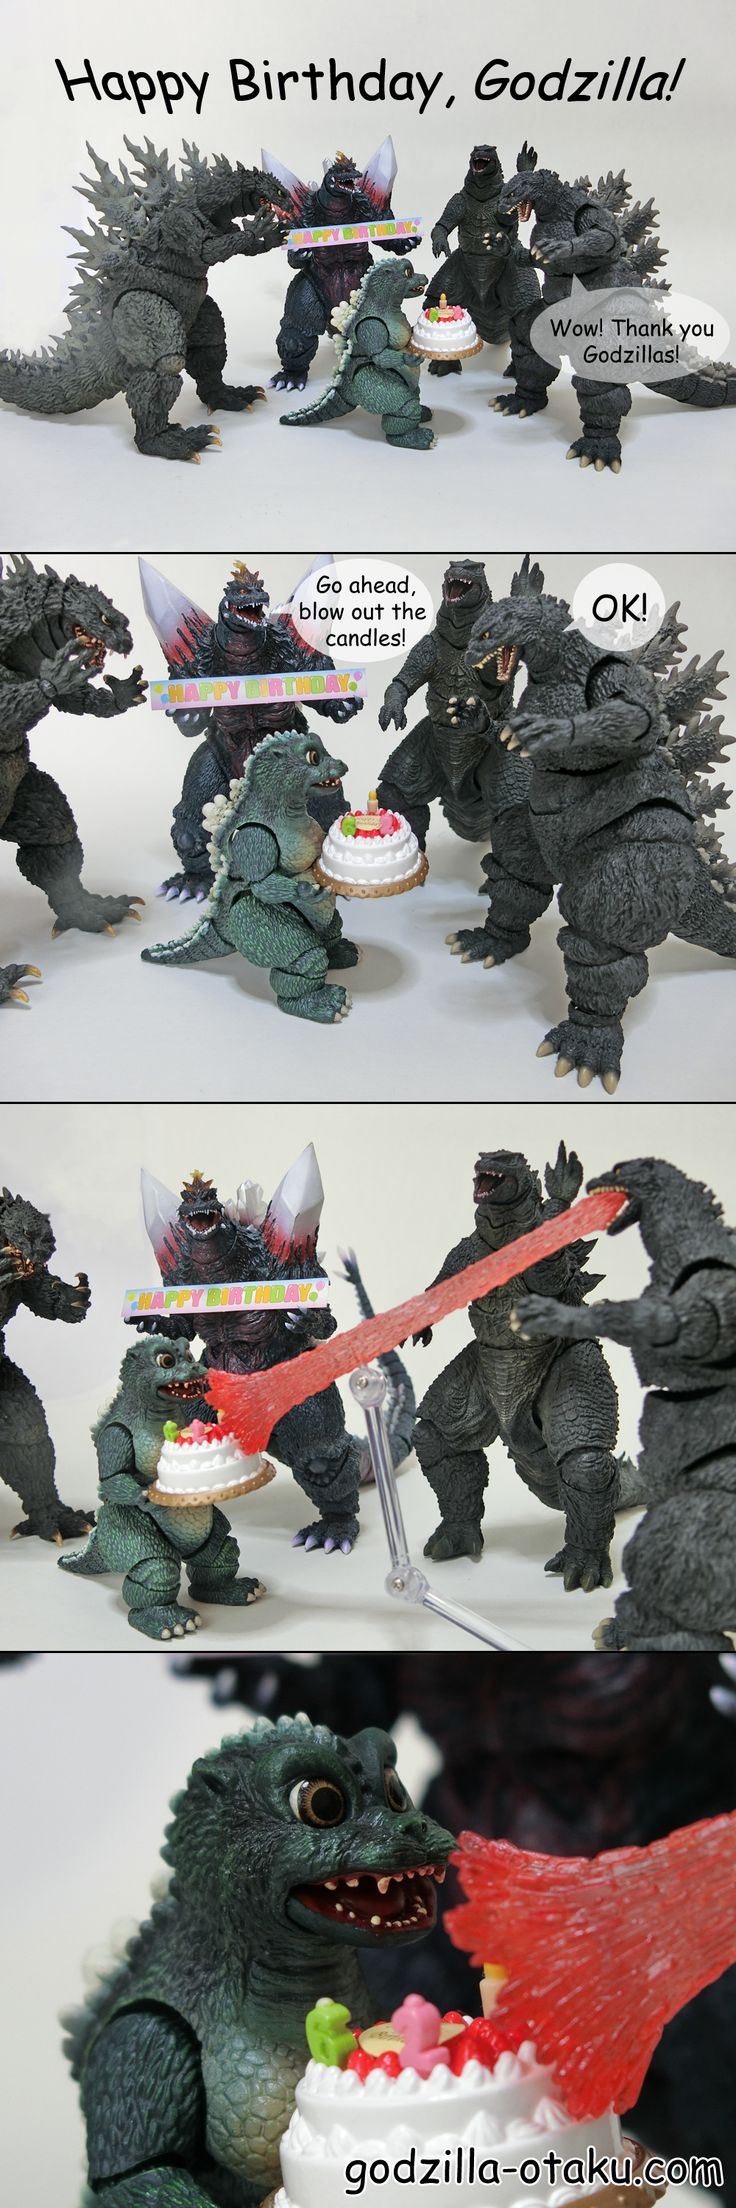 Happy Birthday Godzilla! This is a comic I made for celebrating Godzilla's 62nd birthday